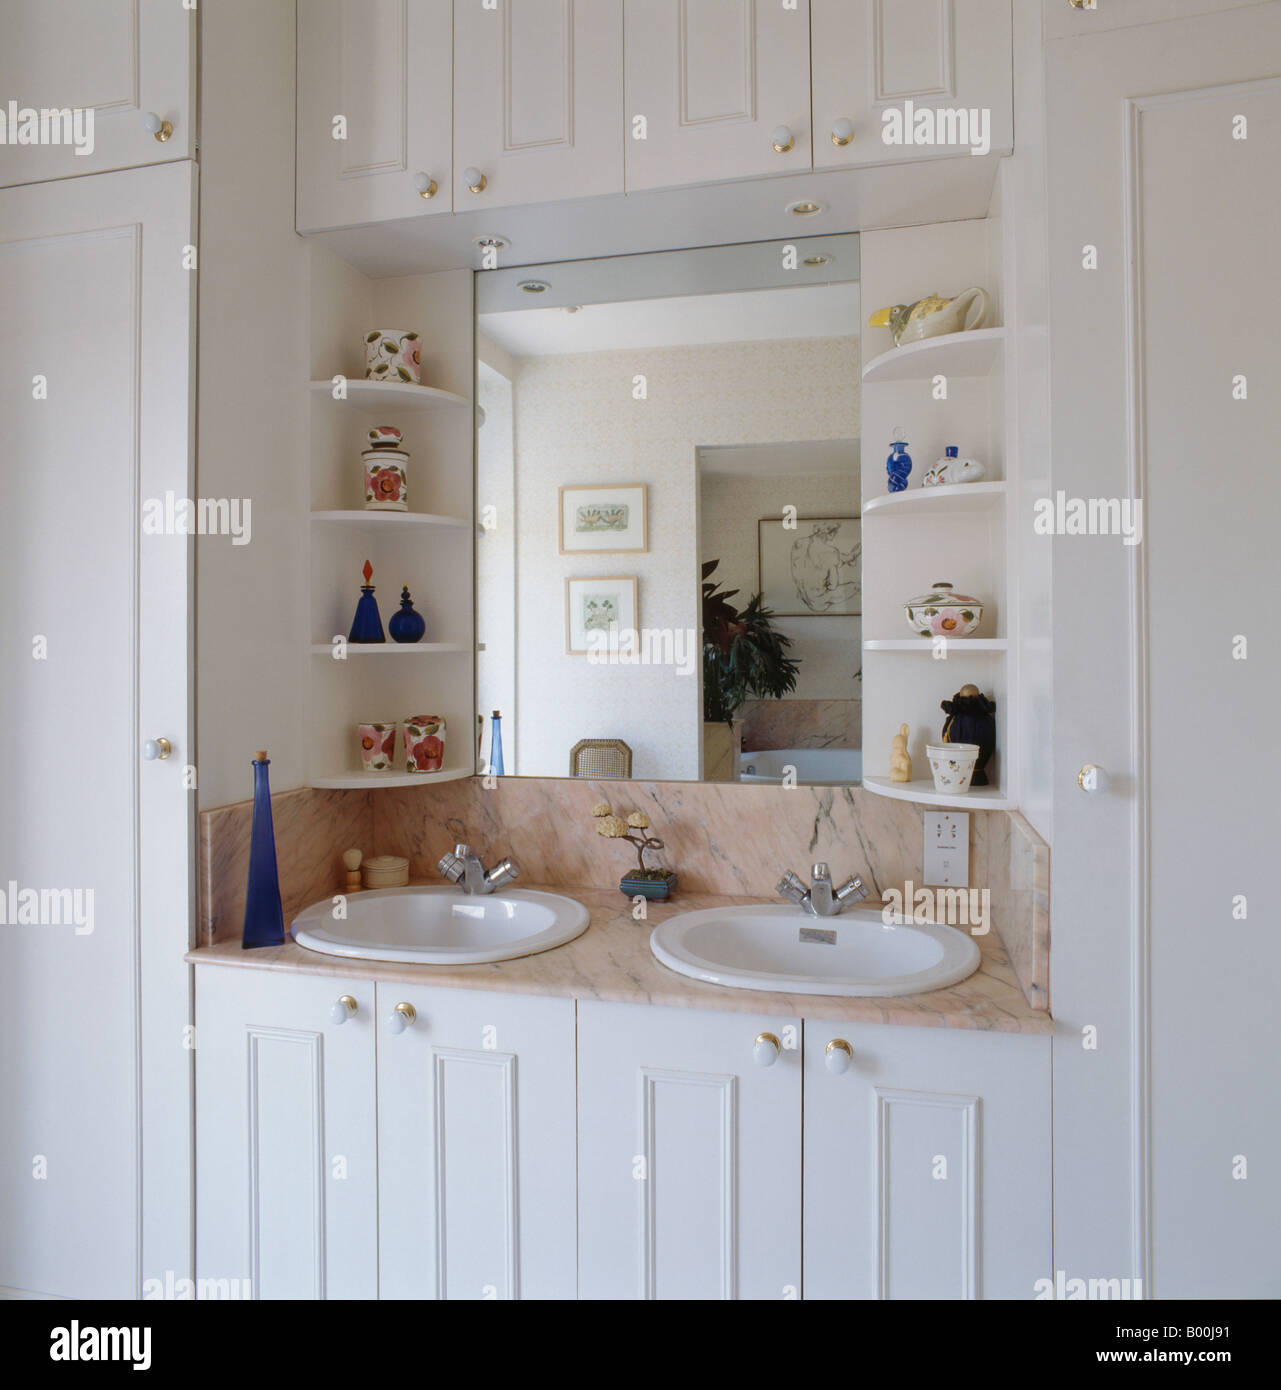 shelves on either side of mirror above double basins in white vanity rh alamy com